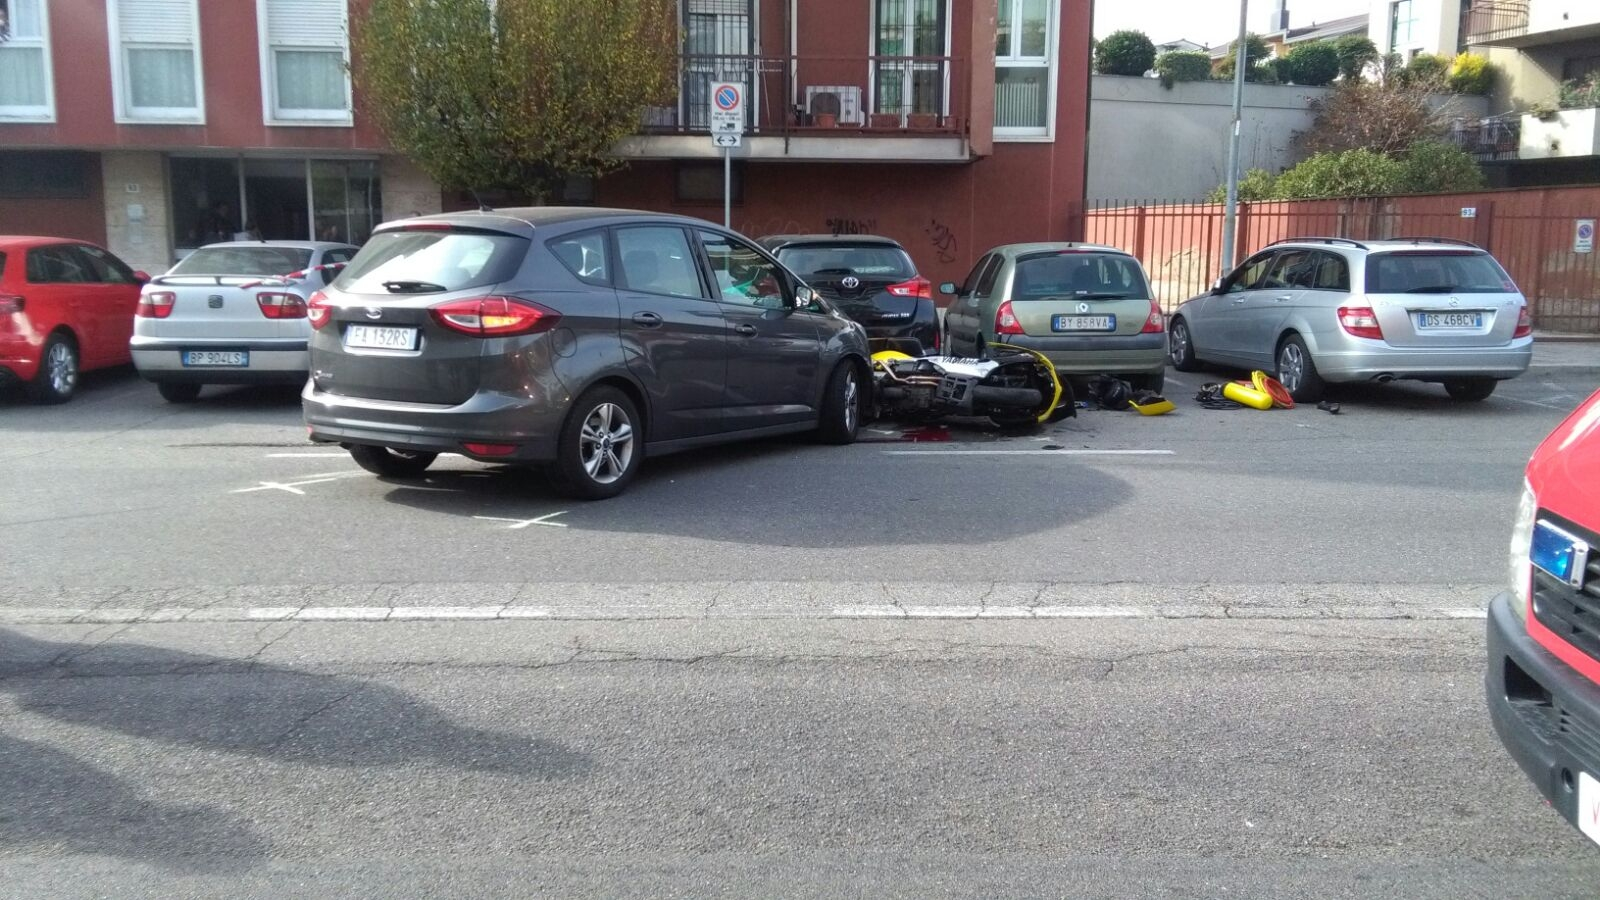 Incidente mortale a Lissone in via Matteotti